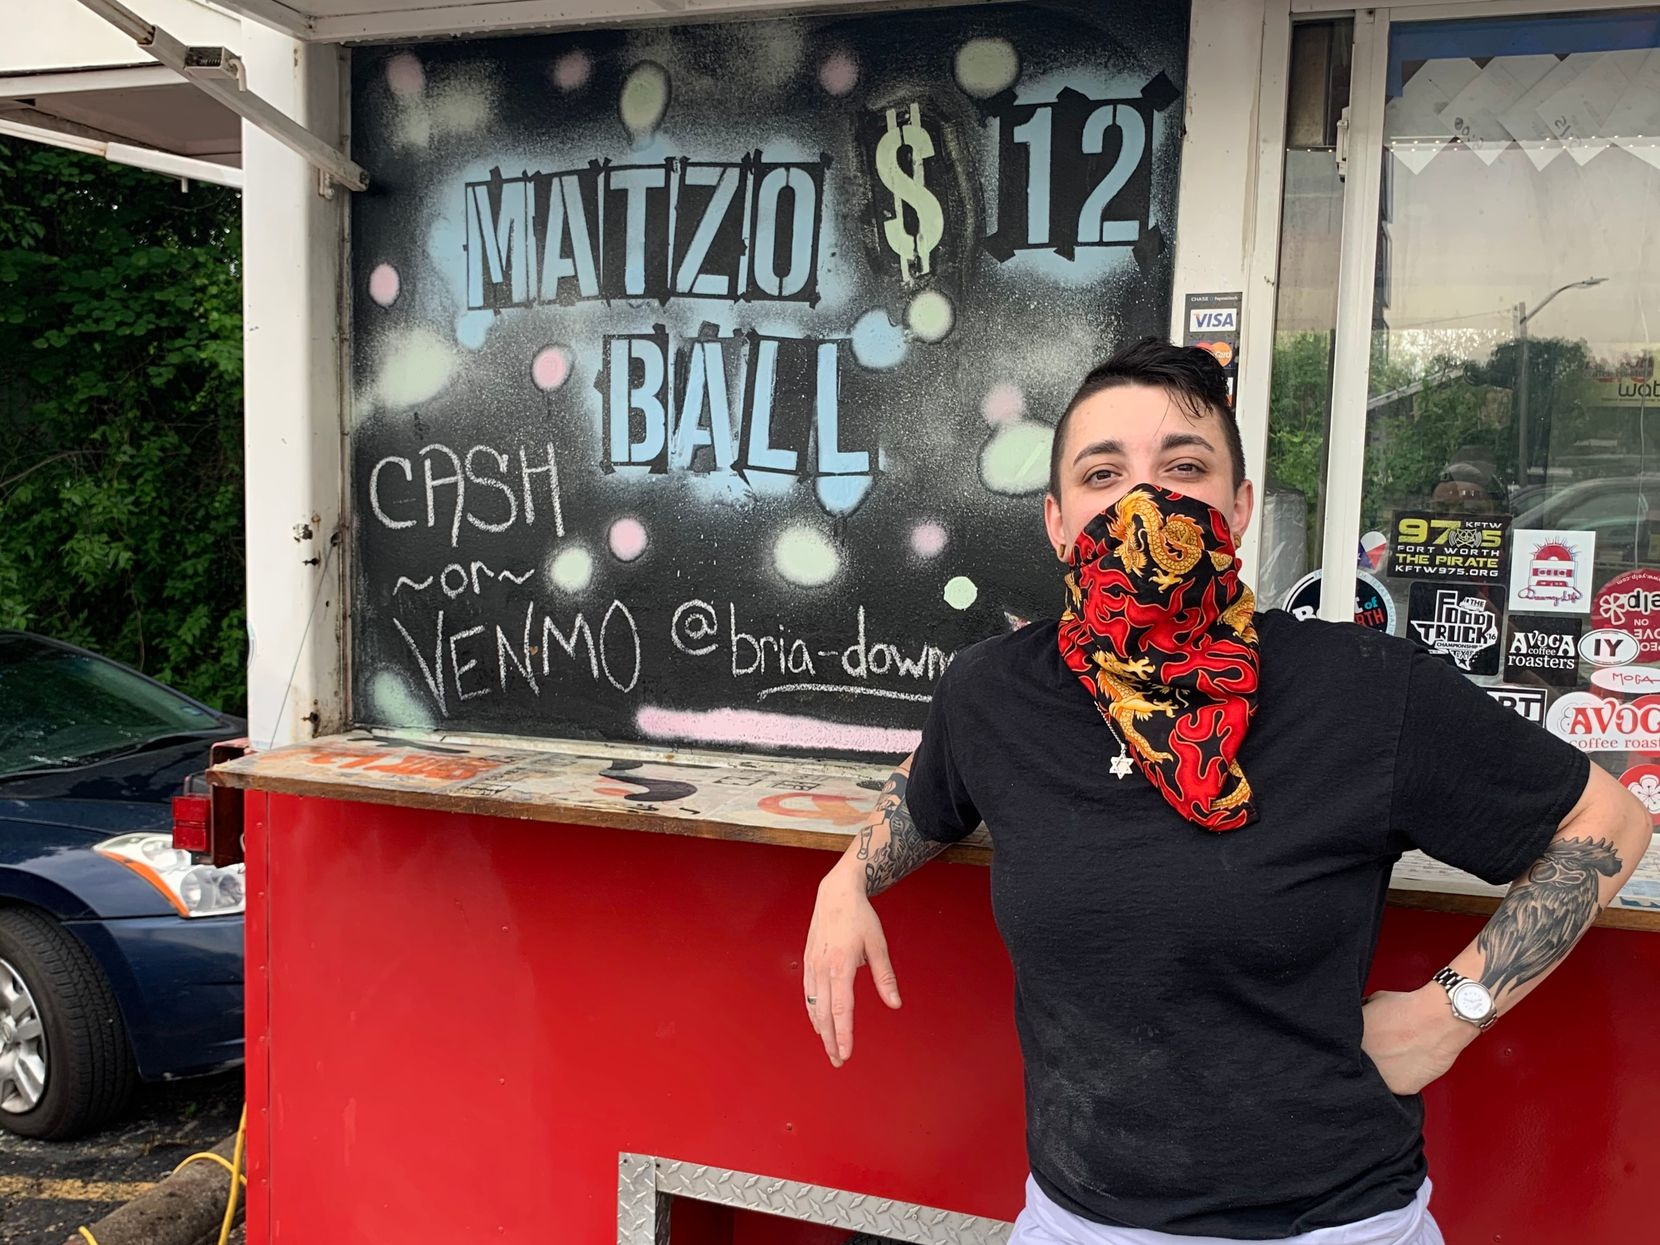 Bria Downey is serving matzo ball soup at a ramen food truck in Fort Worth.